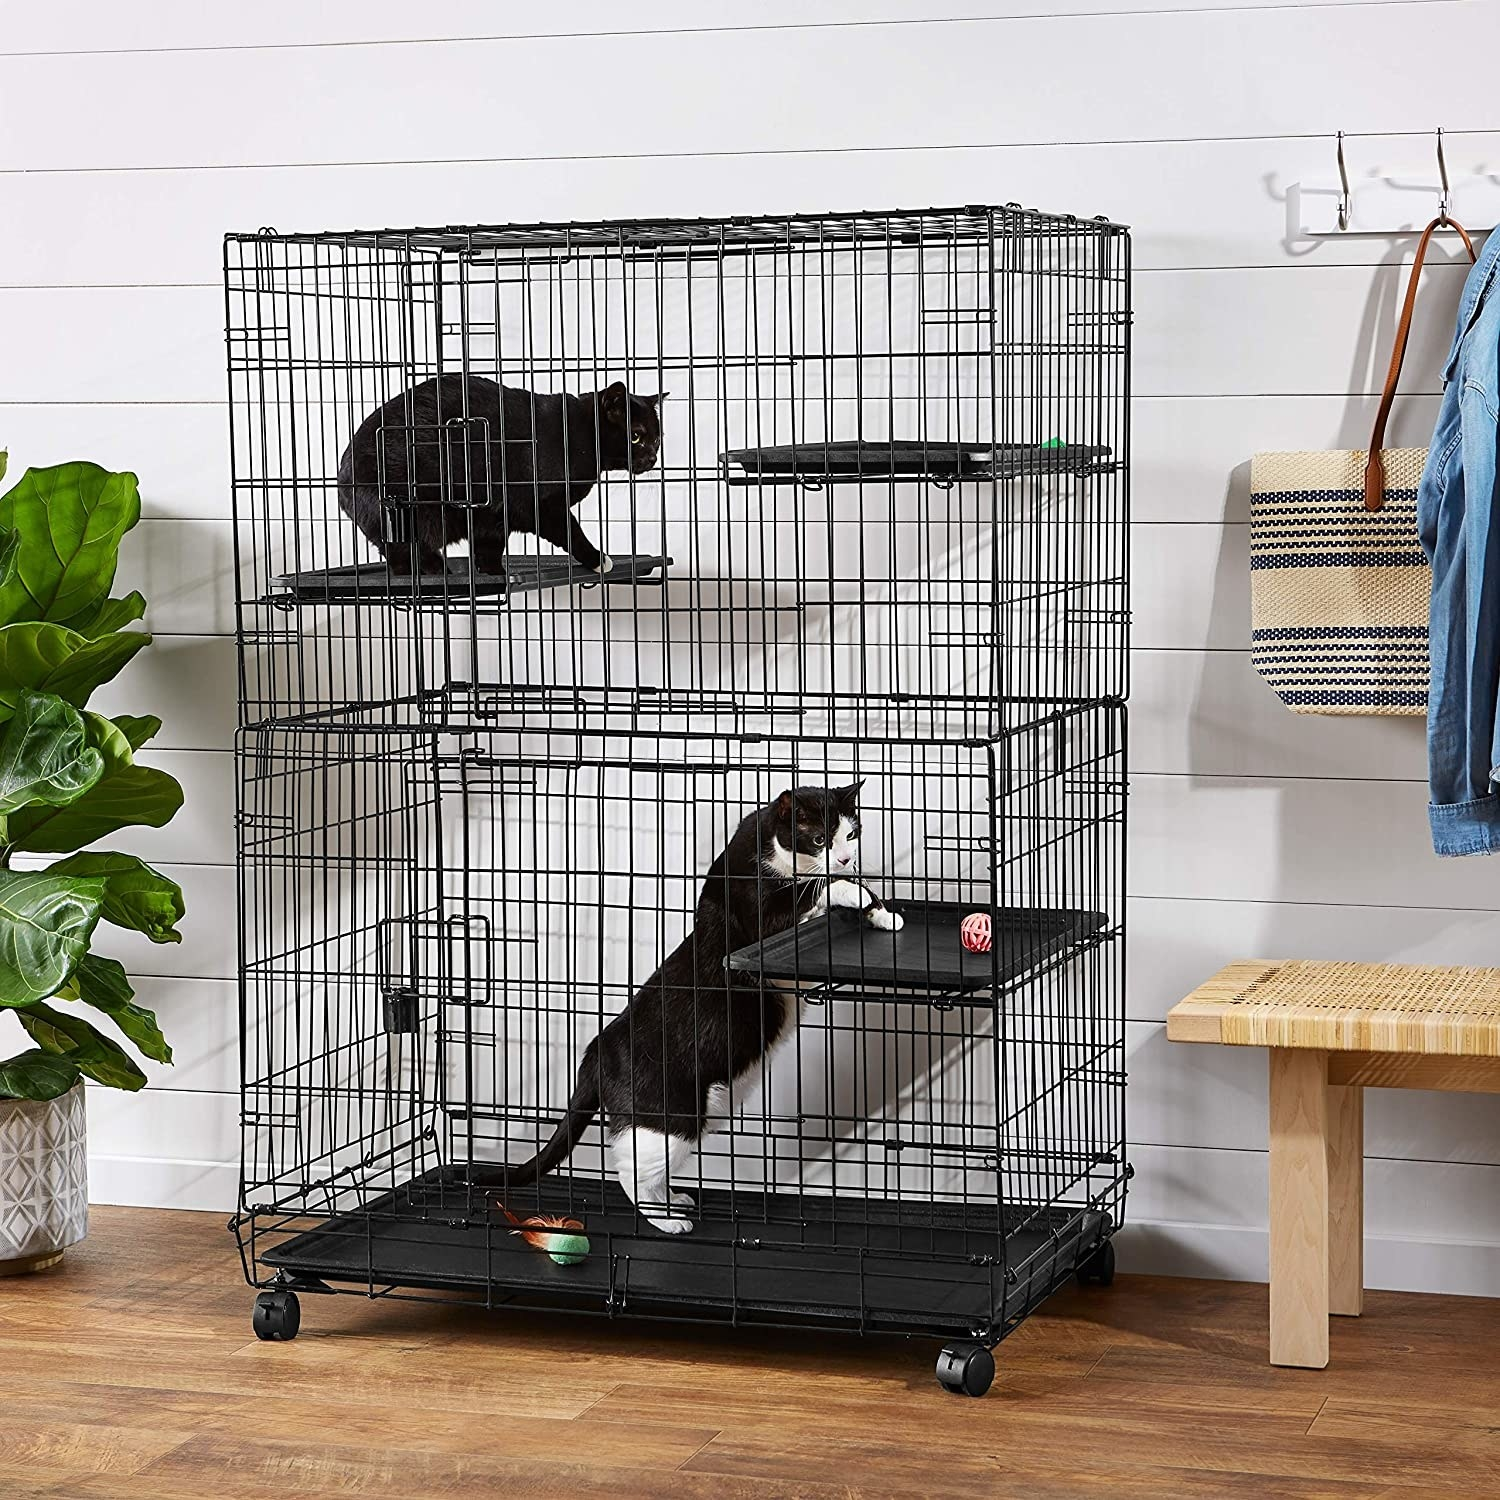 A playpen with two cats inside, one black cat sitting on a pad on the second tier and one black and white cat playing with a ball on the first tier